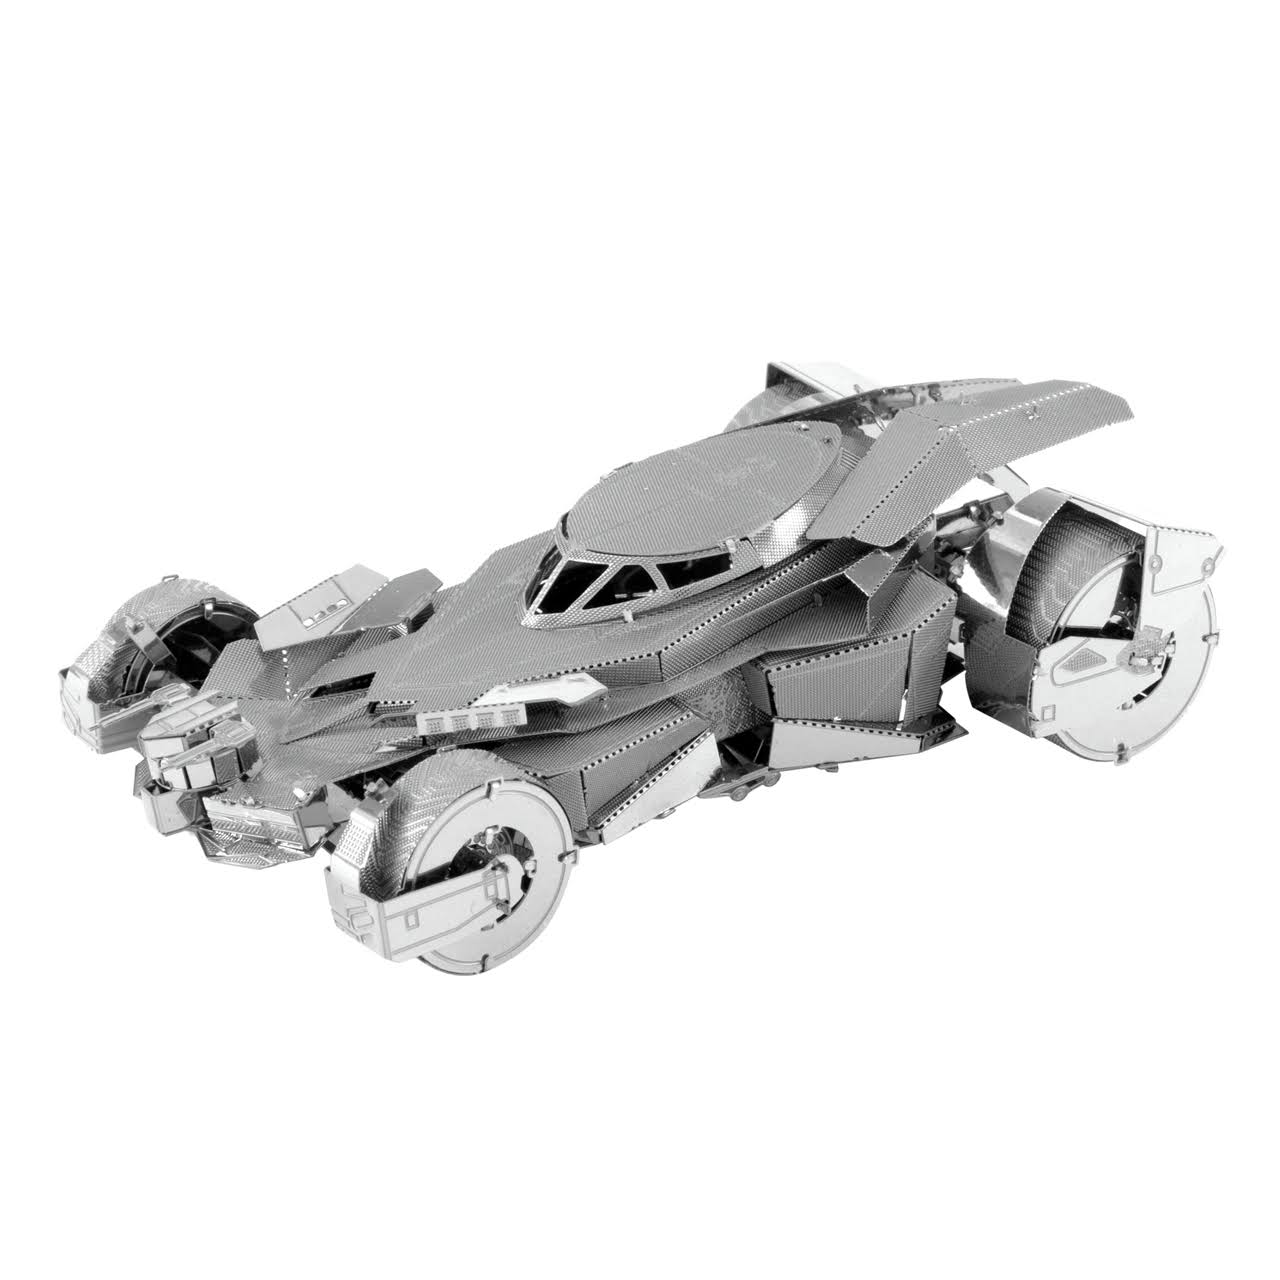 Metal Earth 3D Model Kit Batman V Superman Batmobile